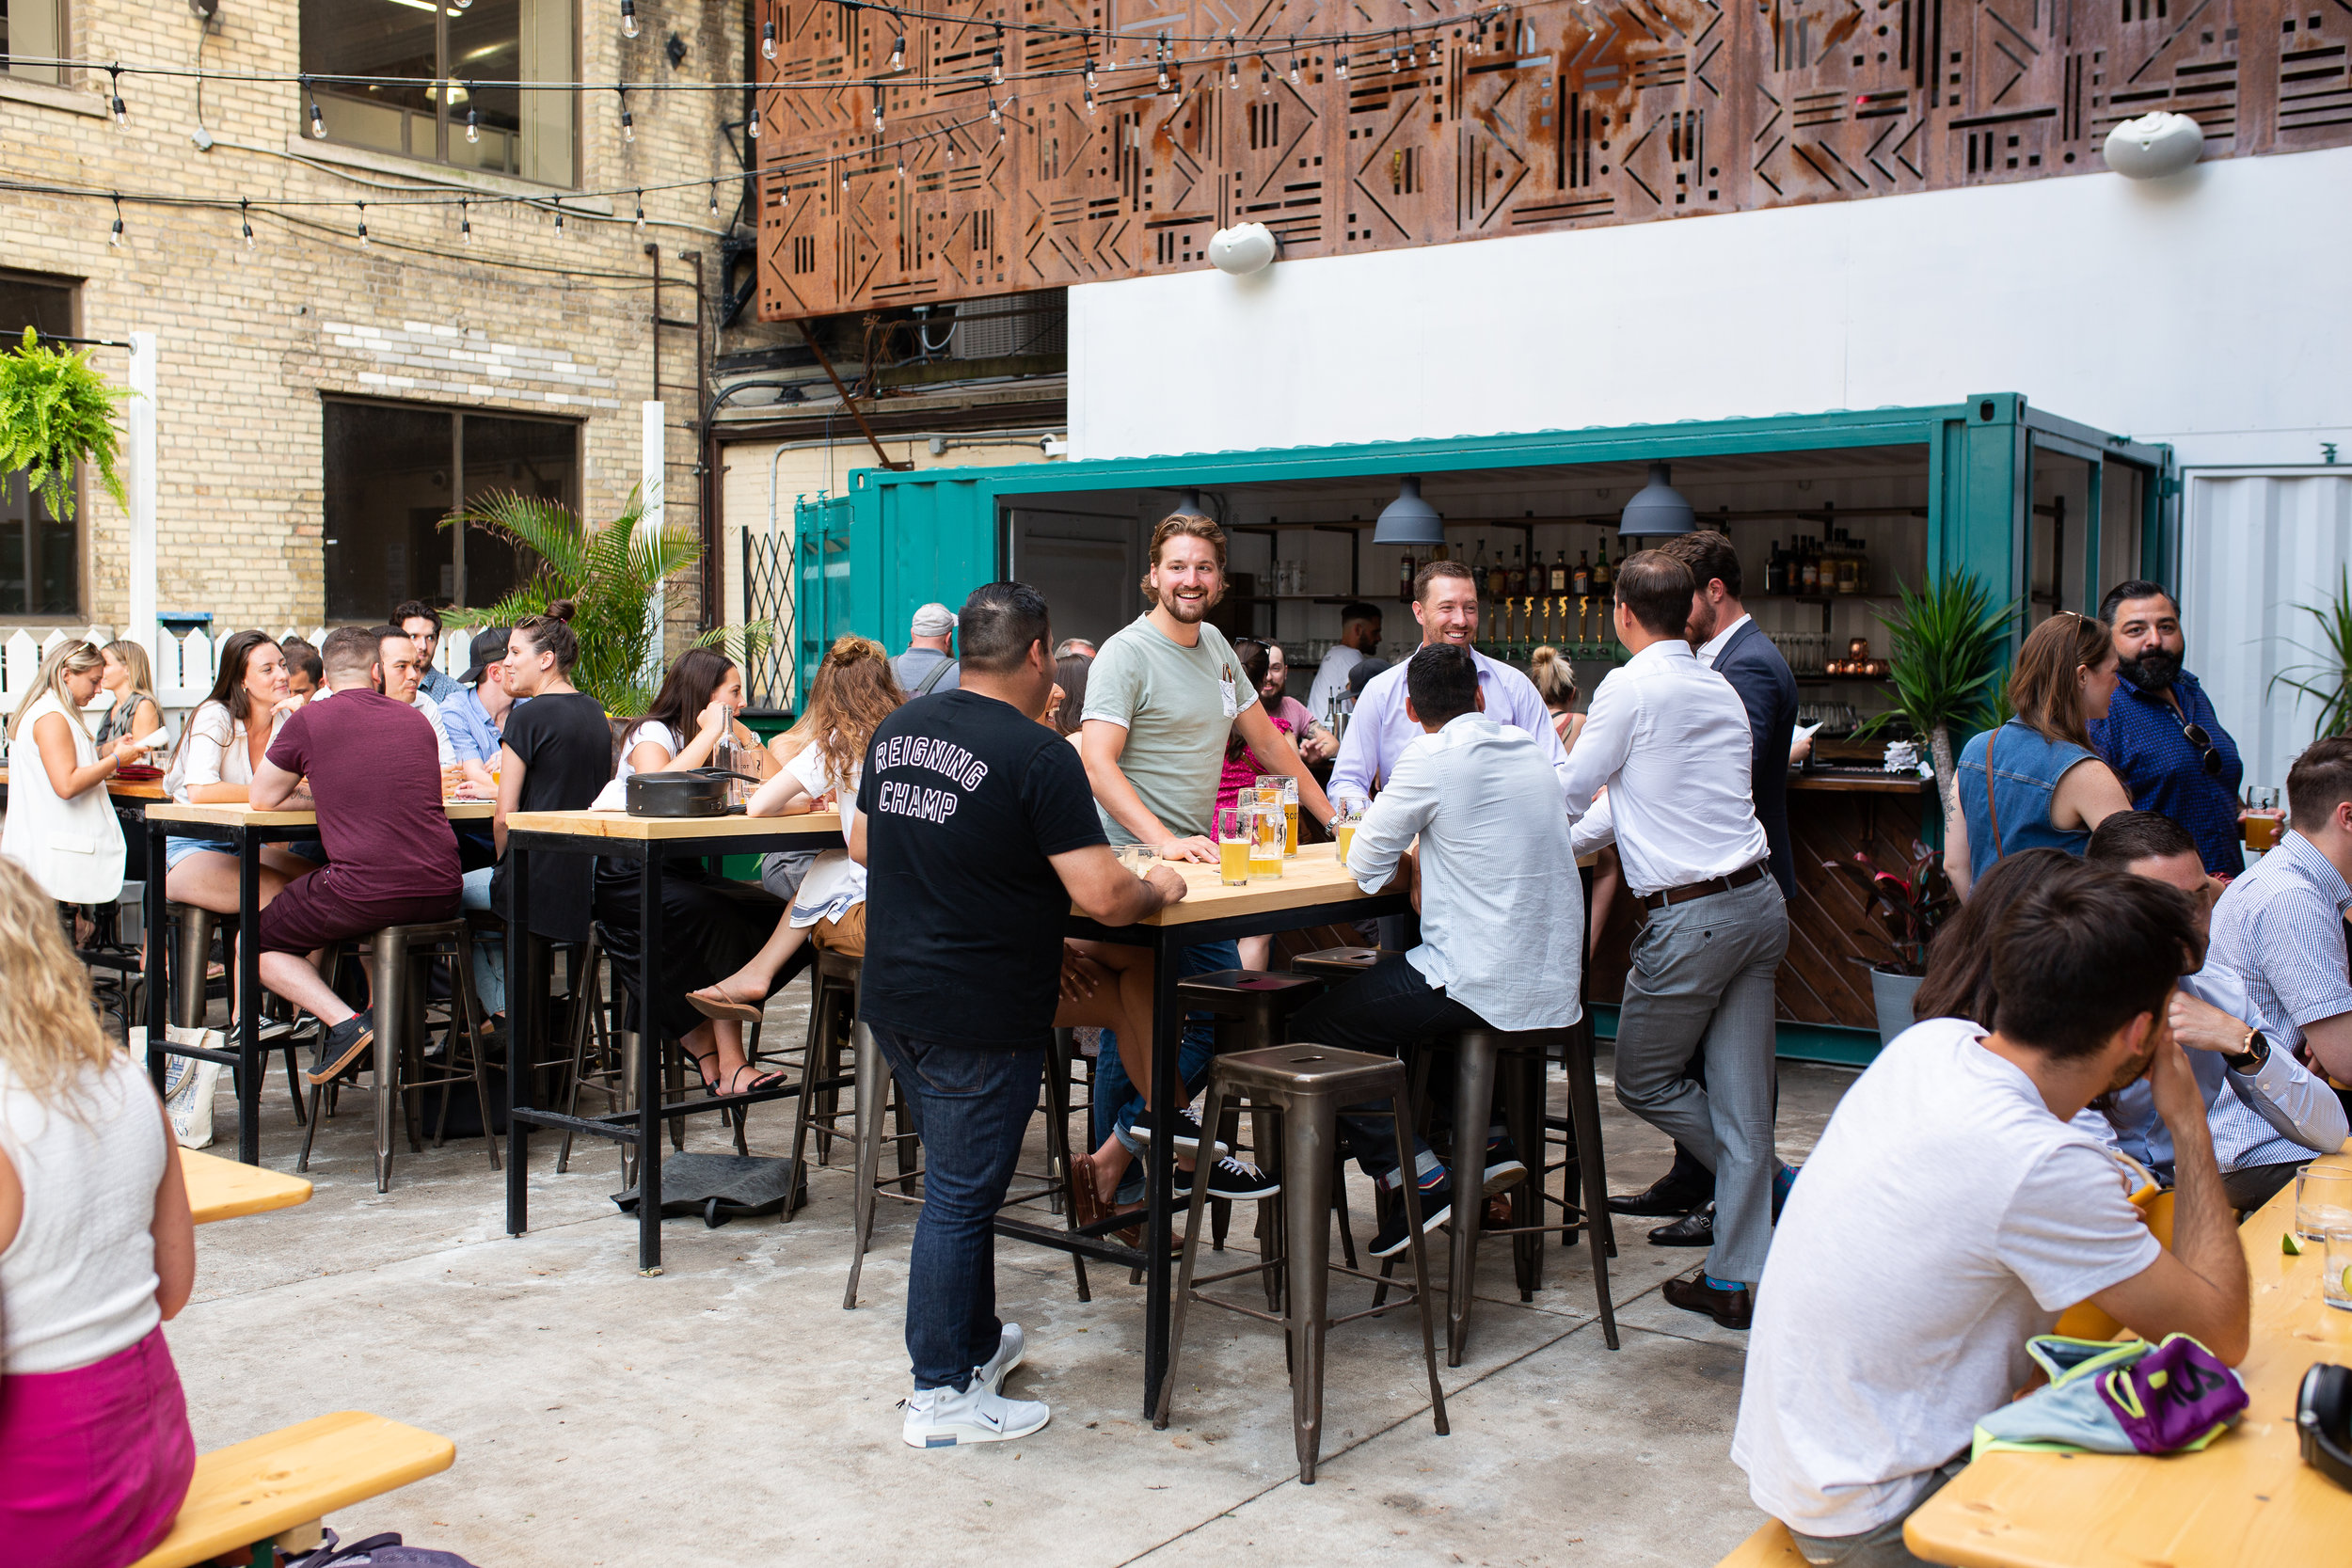 Outdoor beer garden bustling with customers on a bright day